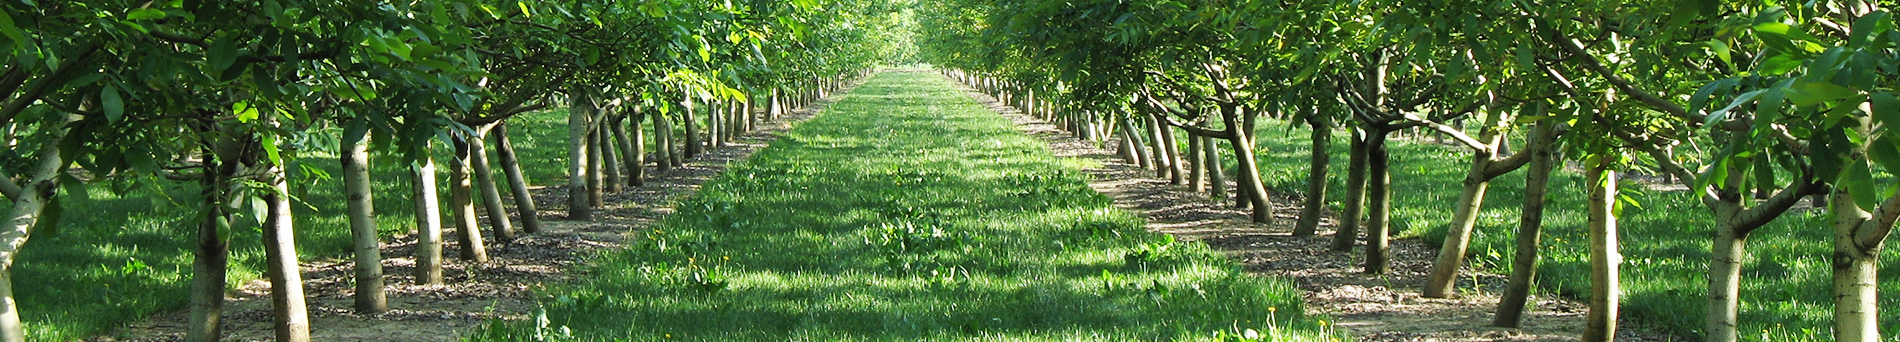 Coltivazione del noce - Growing of walnut trees